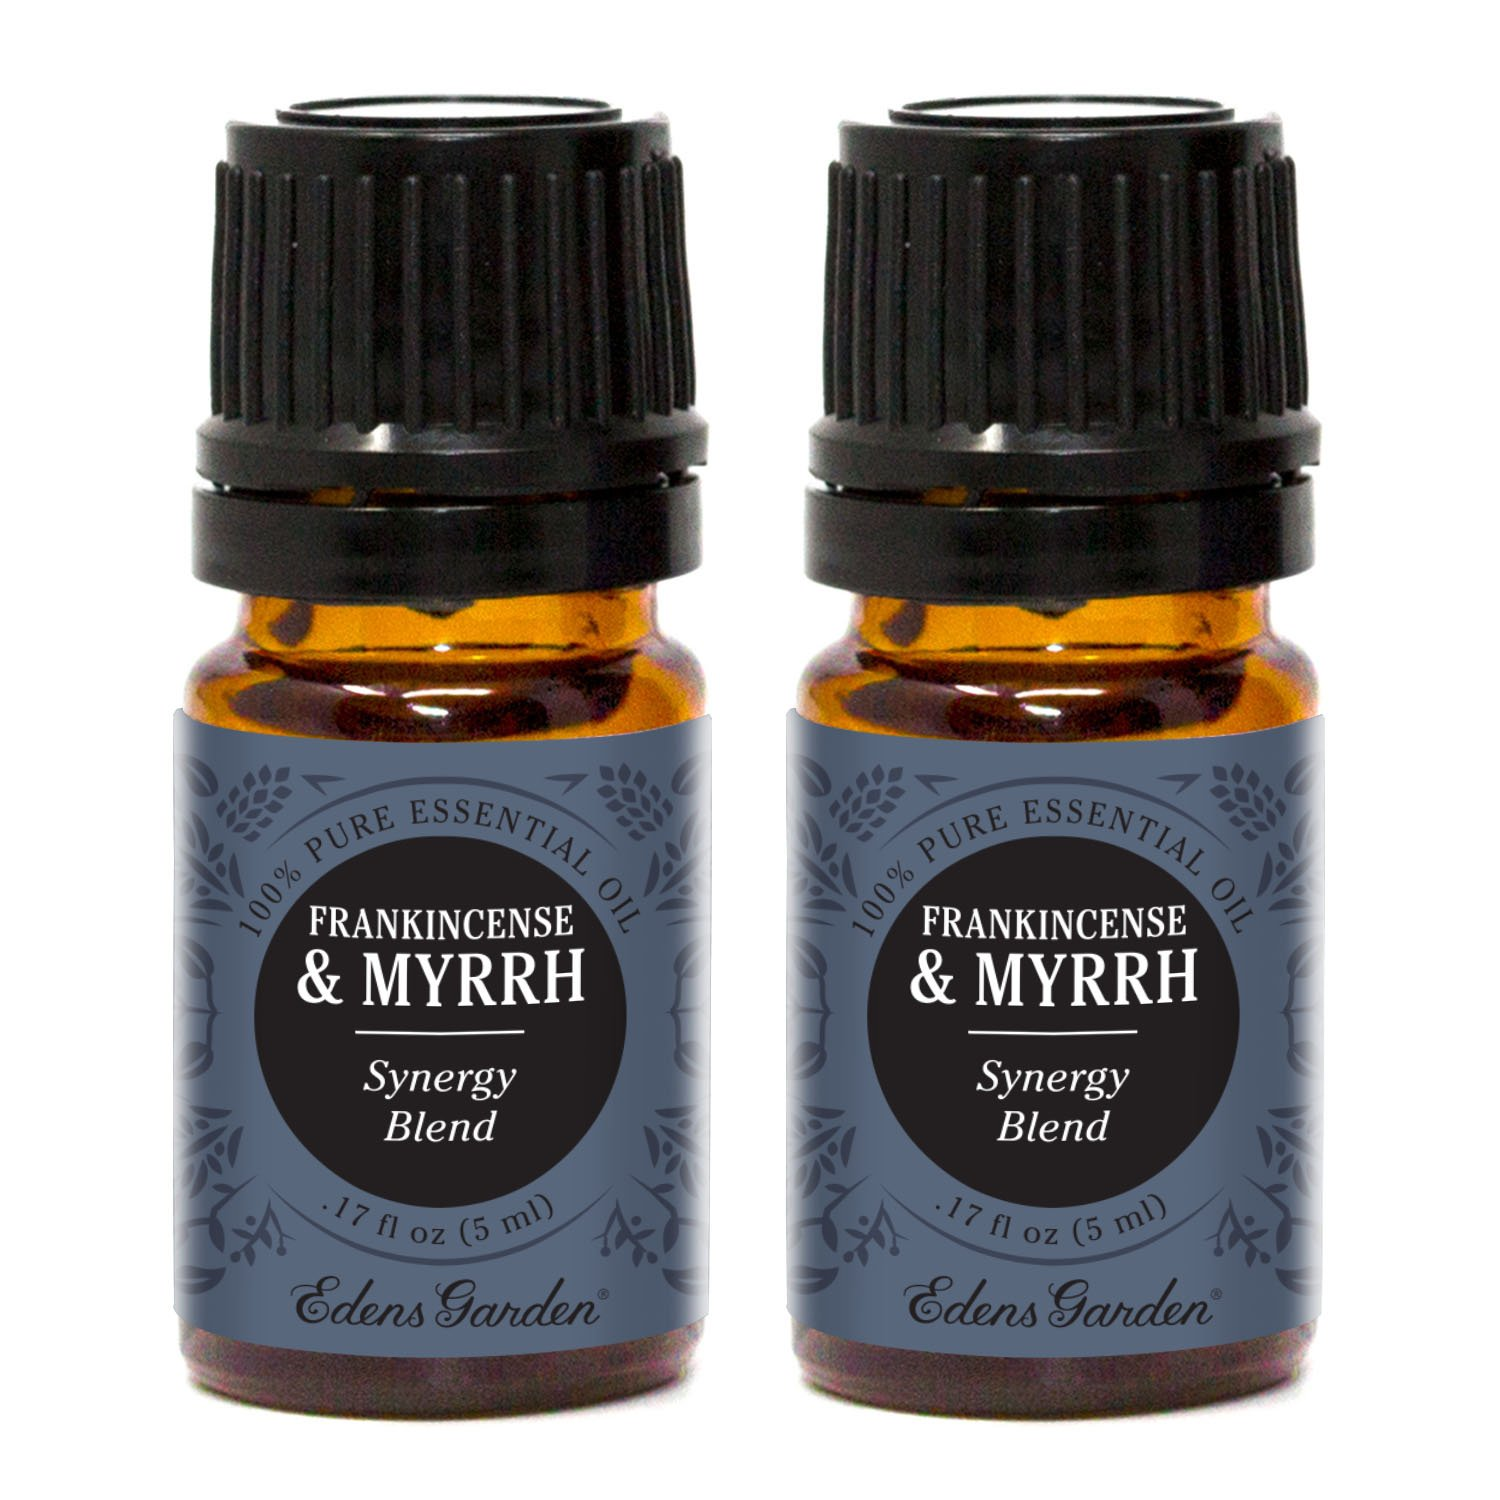 Edens Garden Frankincense & Myrrh Essential Oil Synergy Blend, 100% Pure Therapeutic Grade (Highest Quality Aromatherapy Oils- Skin Care & Stress), 10 ml Value Pack by Edens Garden